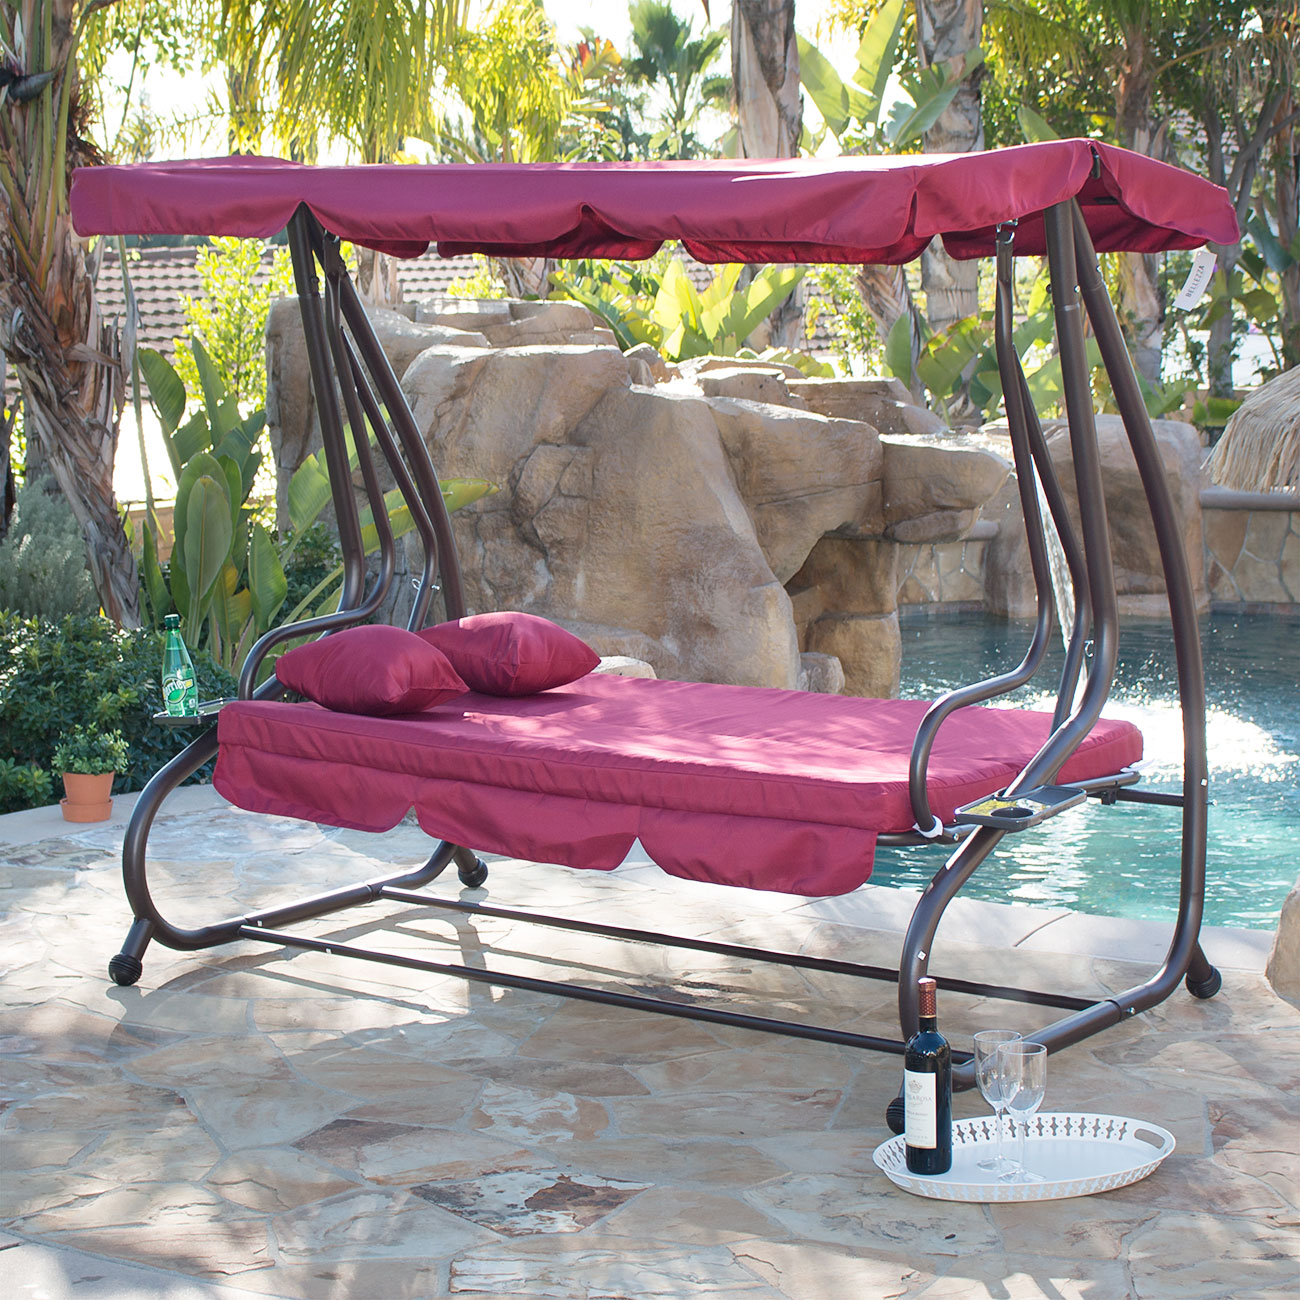 outdoor swing bed patio adjustable canopy deck porch. Black Bedroom Furniture Sets. Home Design Ideas